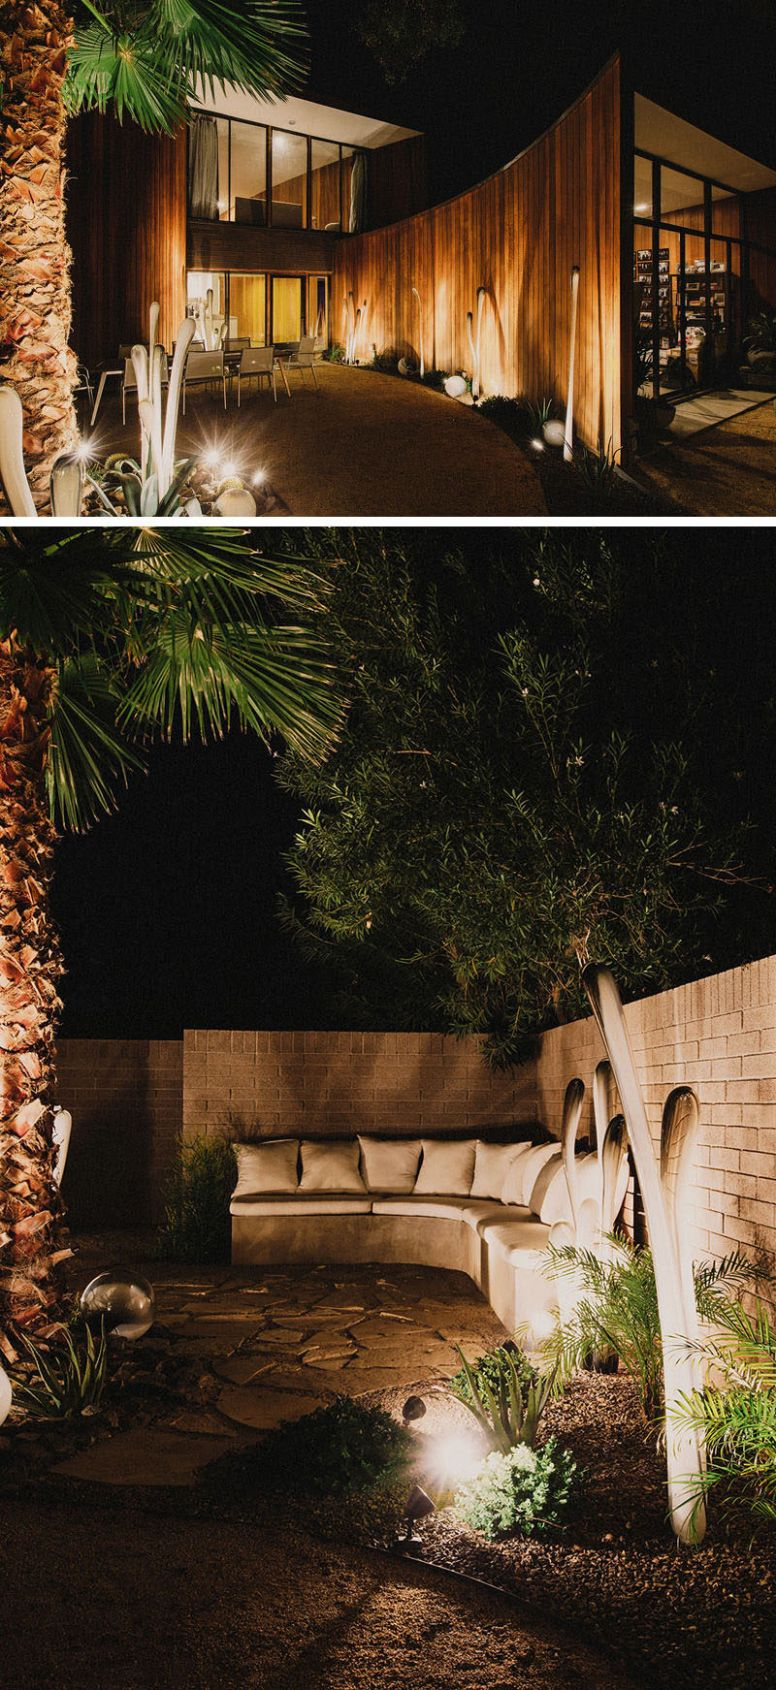 12 Outdoor Lighting Ideas To Inspire Your Spring Backyard Makeover